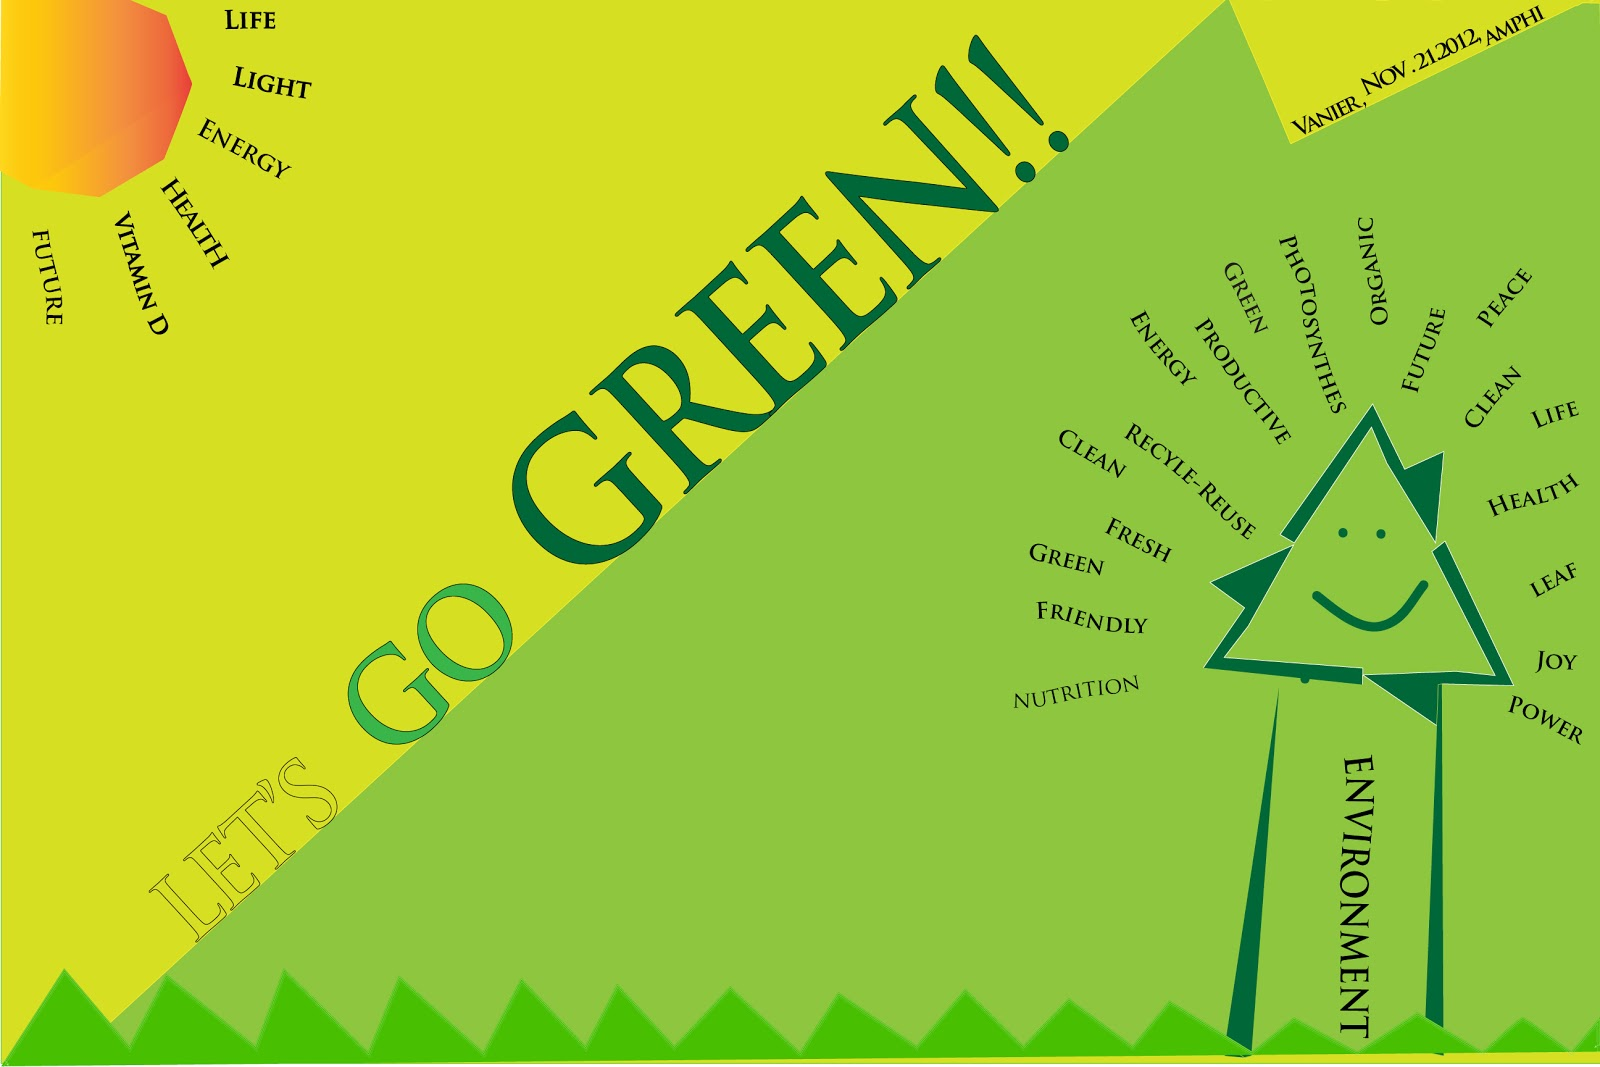 My Own World Project 2 Environmental Awareness Poster